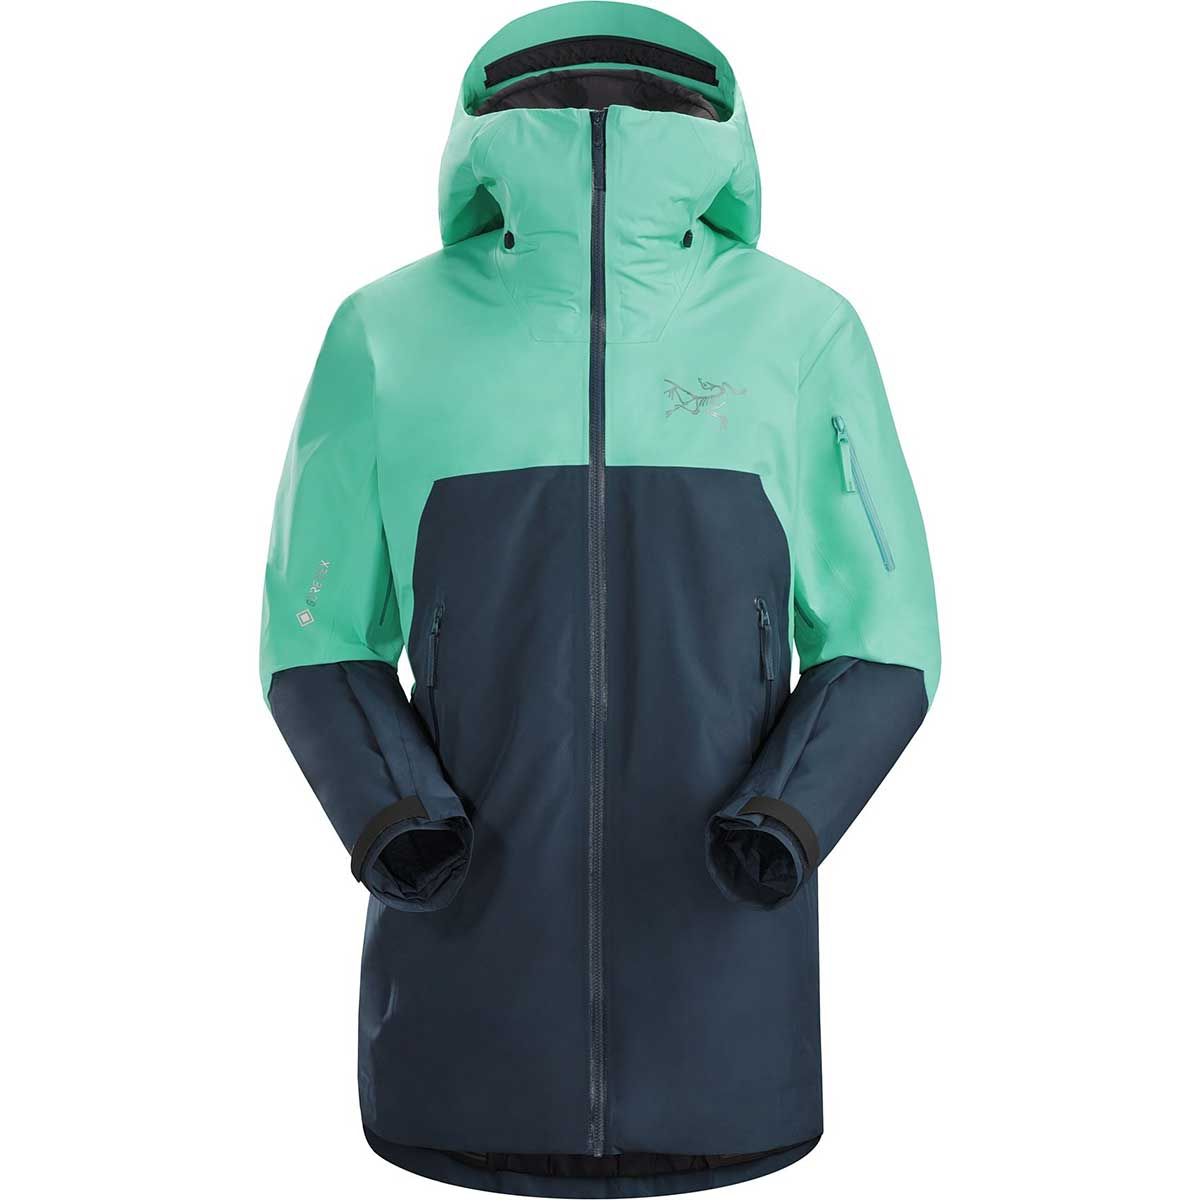 Arcteryx women's Shashka IS Jacket in Illucination front view